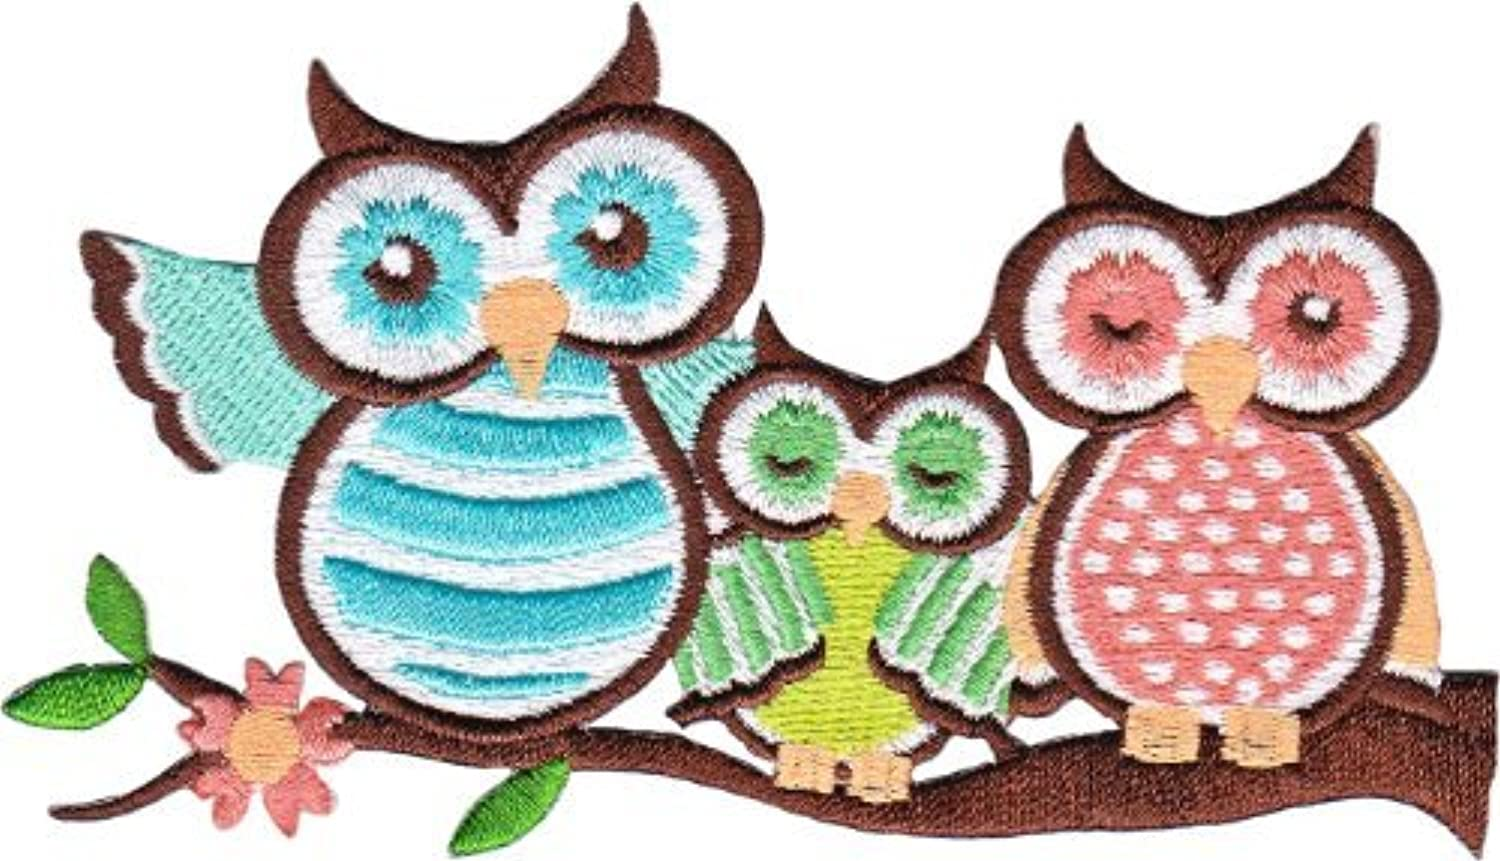 Application Animals 3 Owls Patch by Application